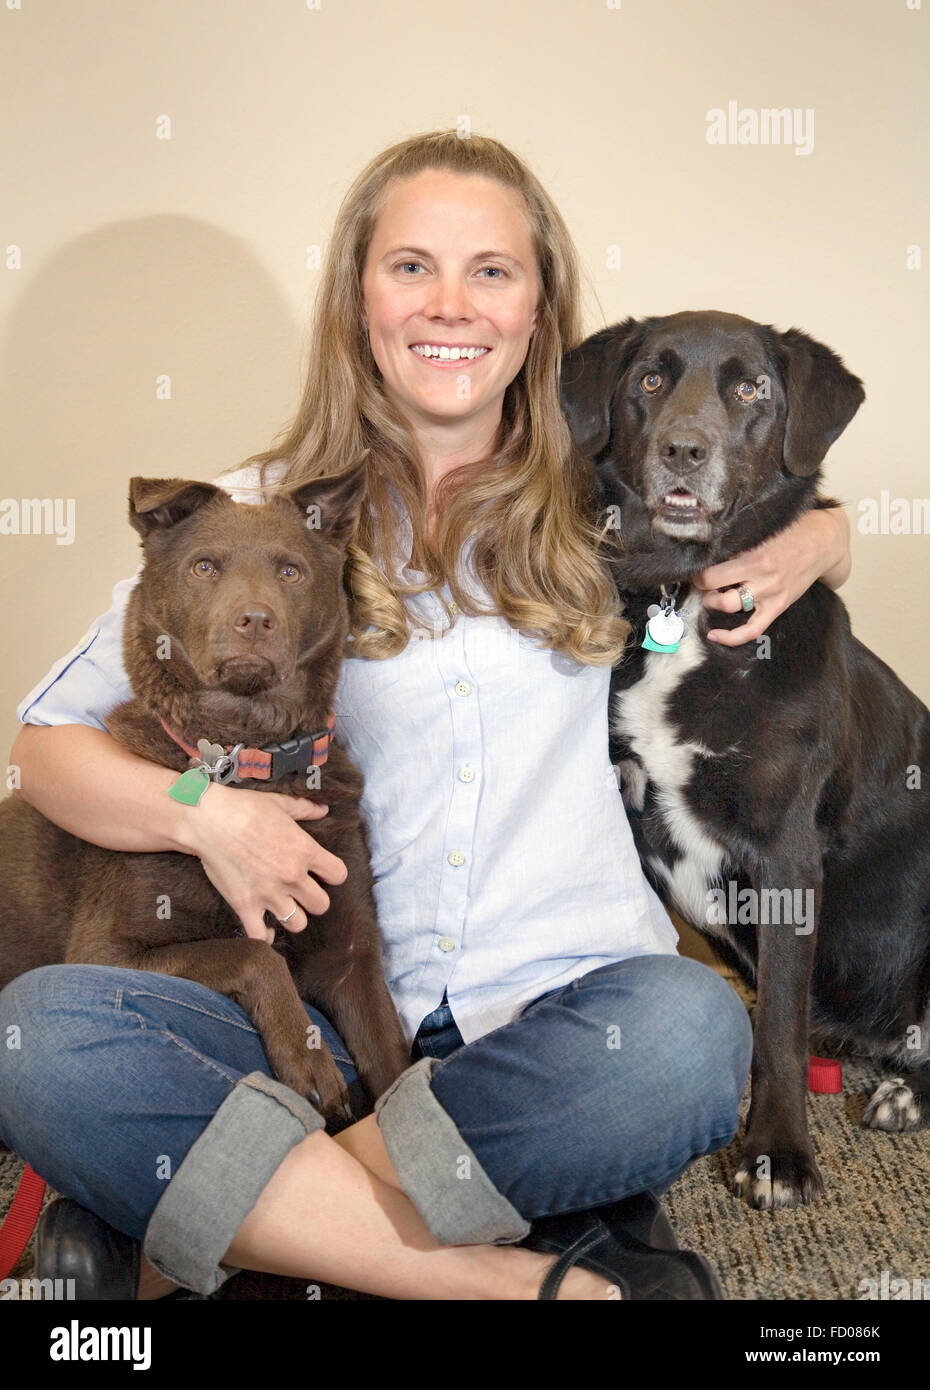 A woman with her two dogs - Stock Image